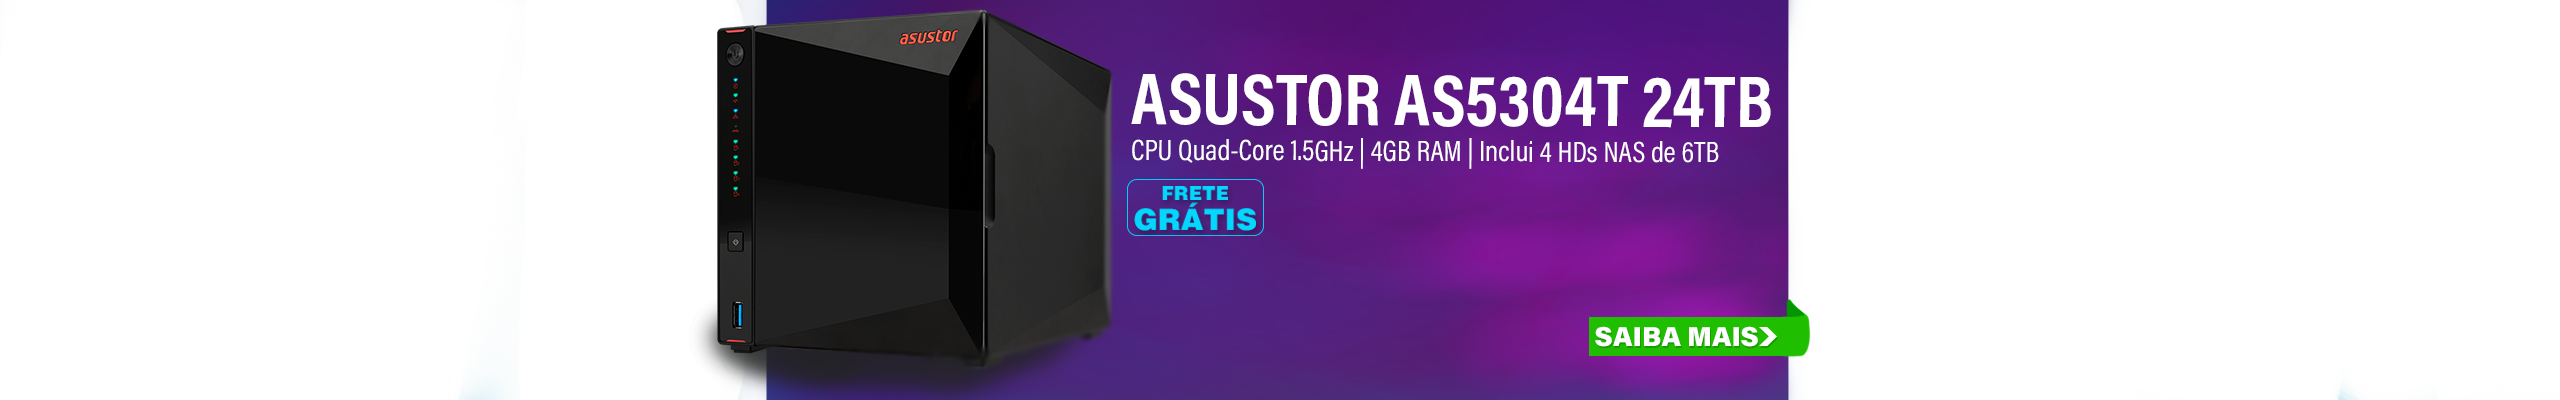 NAS ASUSTOR | AS5304T | 24TB | 2X 2,5 GBE | CPU INTEL QUAD-CORE 1,5 GHZ | 4GB DDR4 | INCLUI 4 HDS NAS DE 6TB